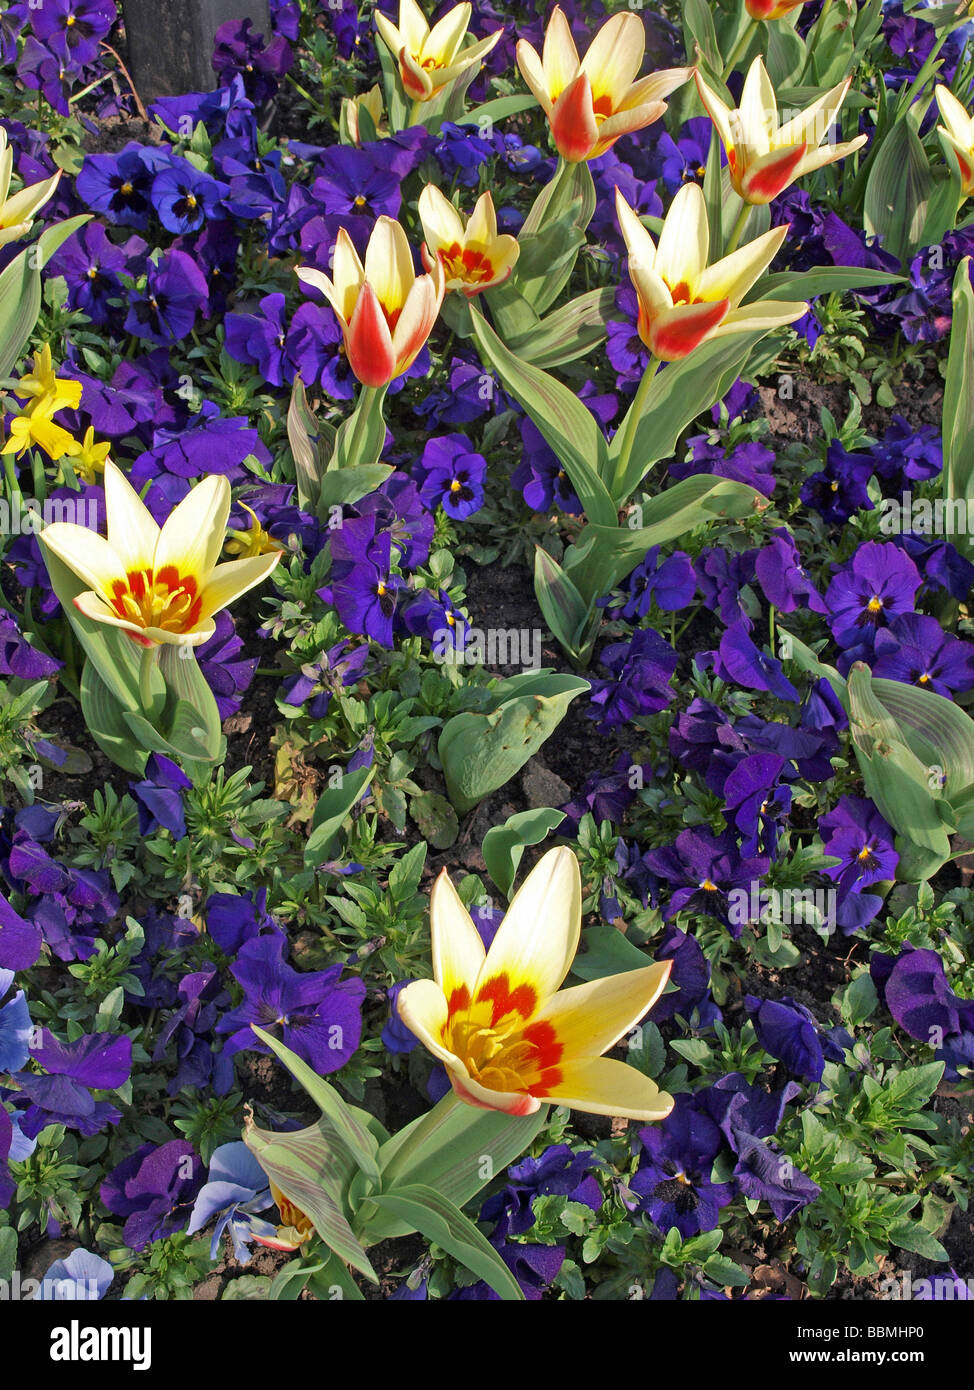 Close up photo of tulips and pansies in a formal flower bed - Stock Image